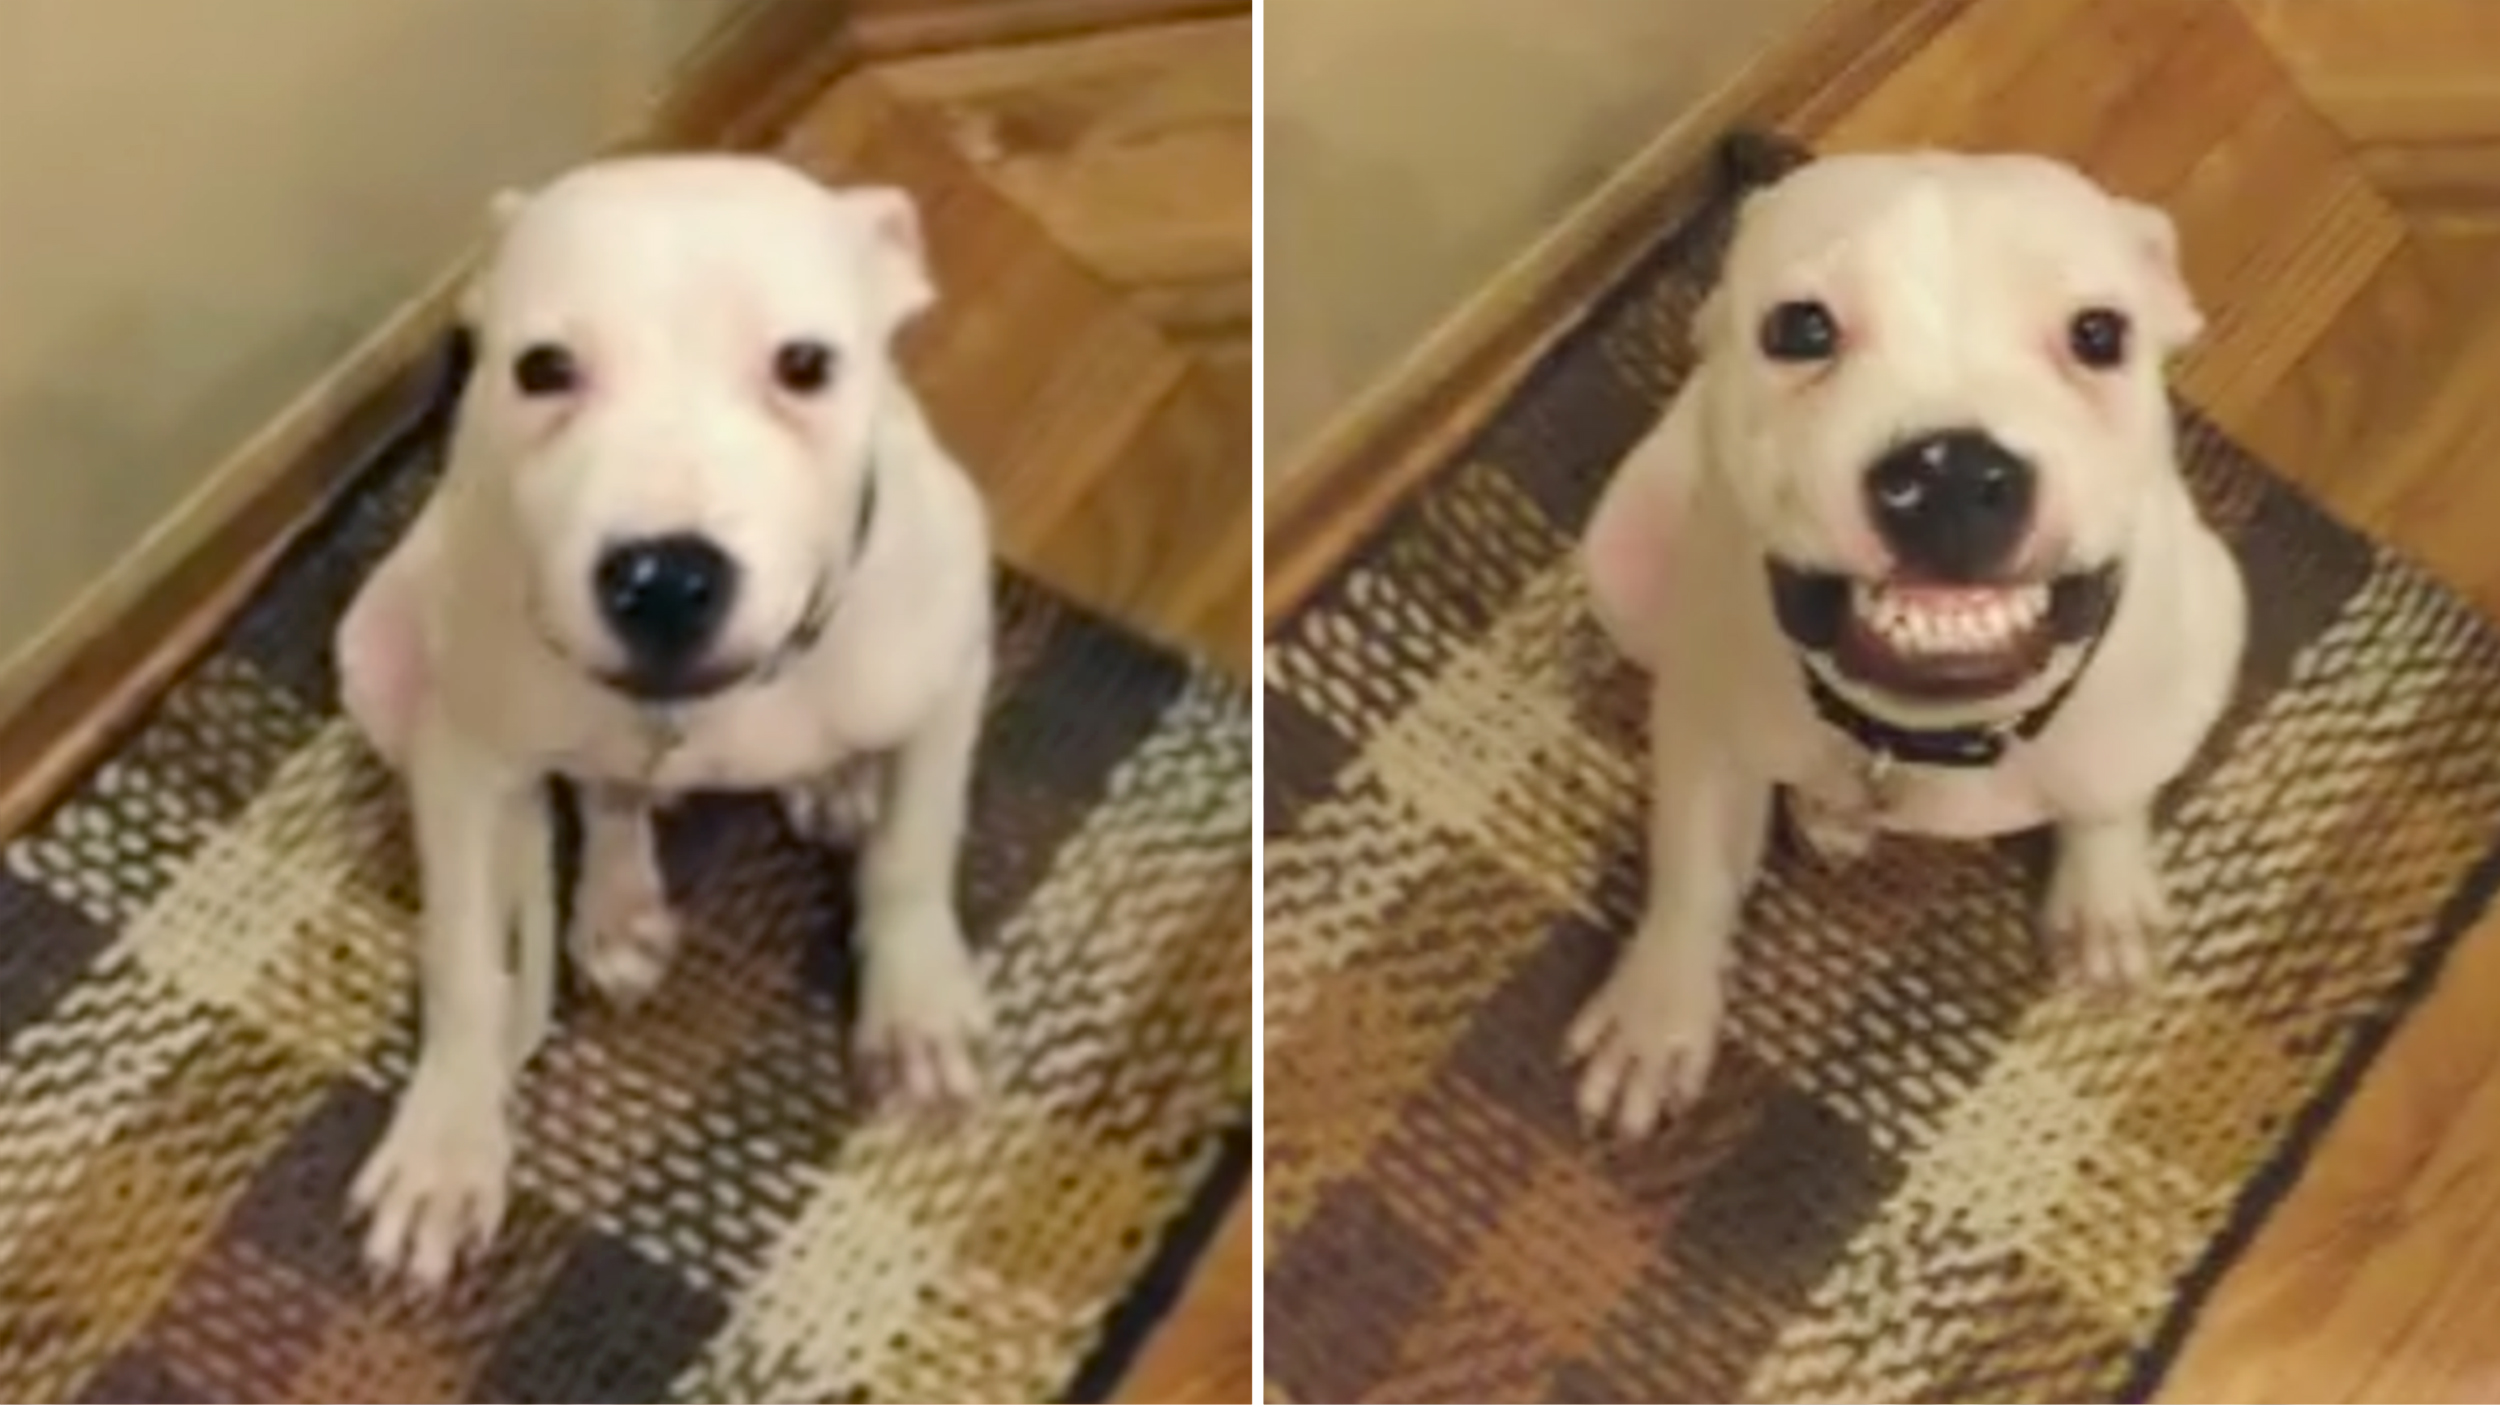 Say cheese'! Rescue dog offers up smiles on command in sweet viral video